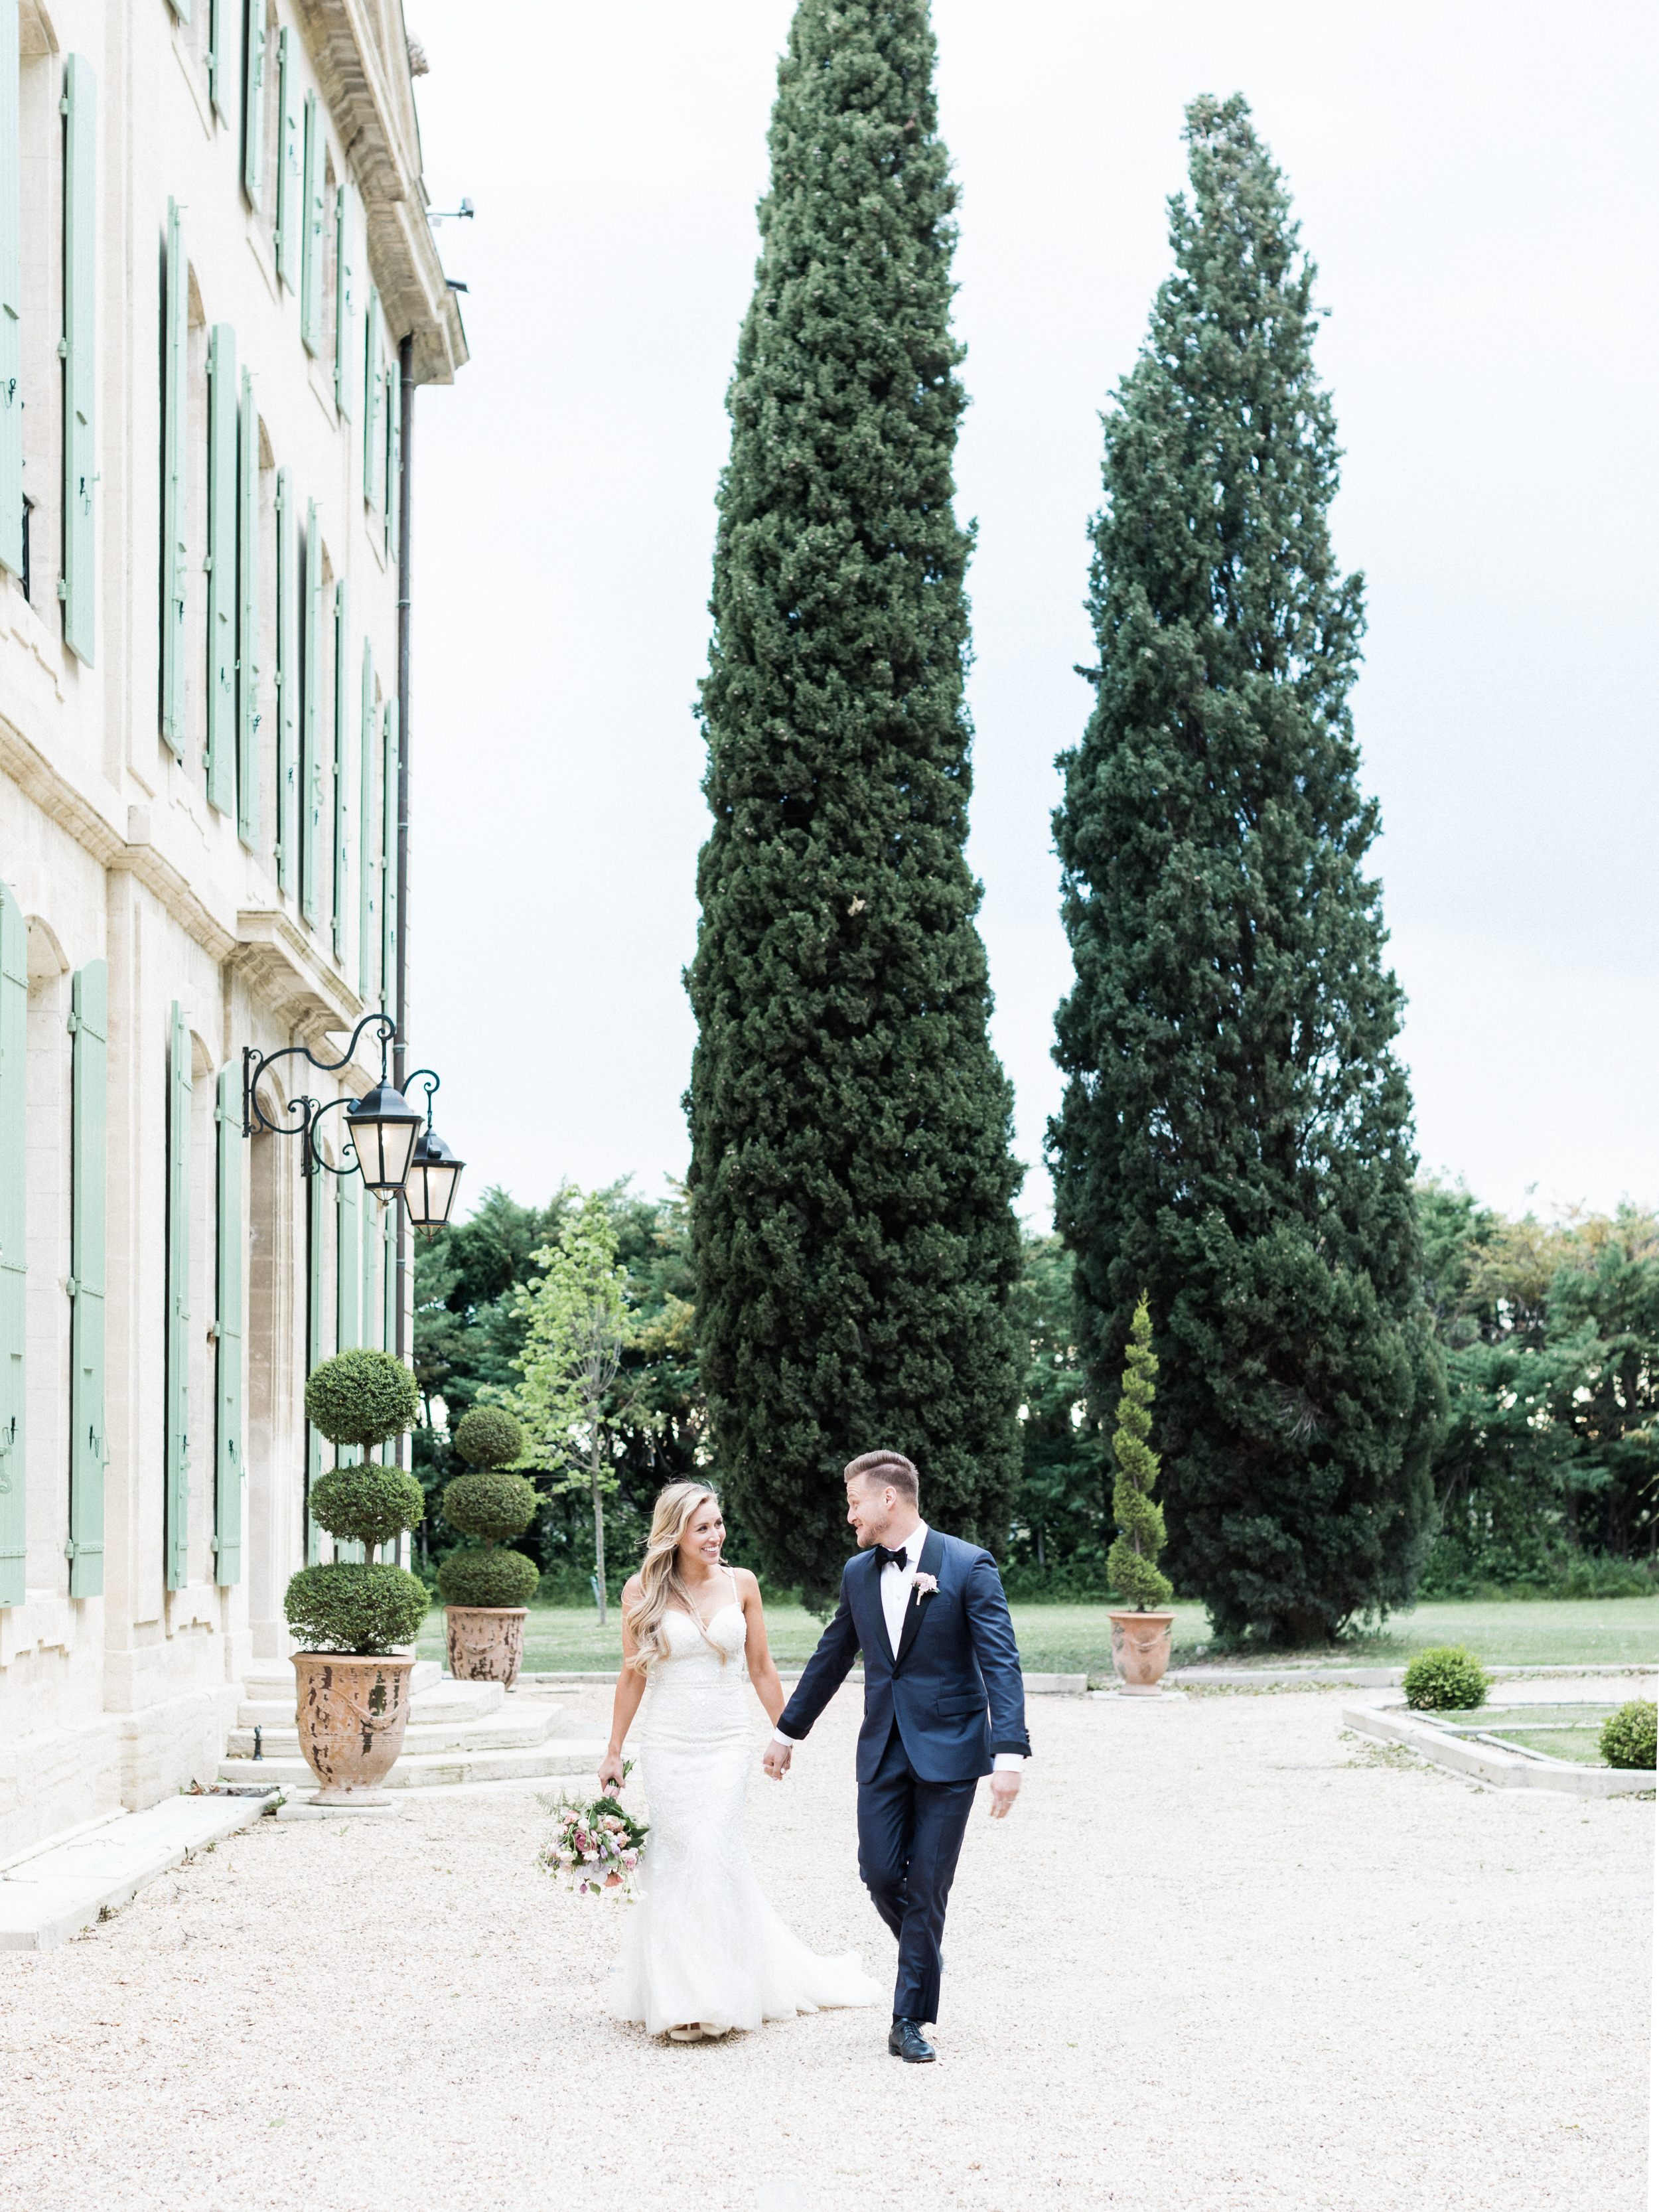 chateau_de_tourreau_provence_wedding_(c)_rory_wylie-47.jpg